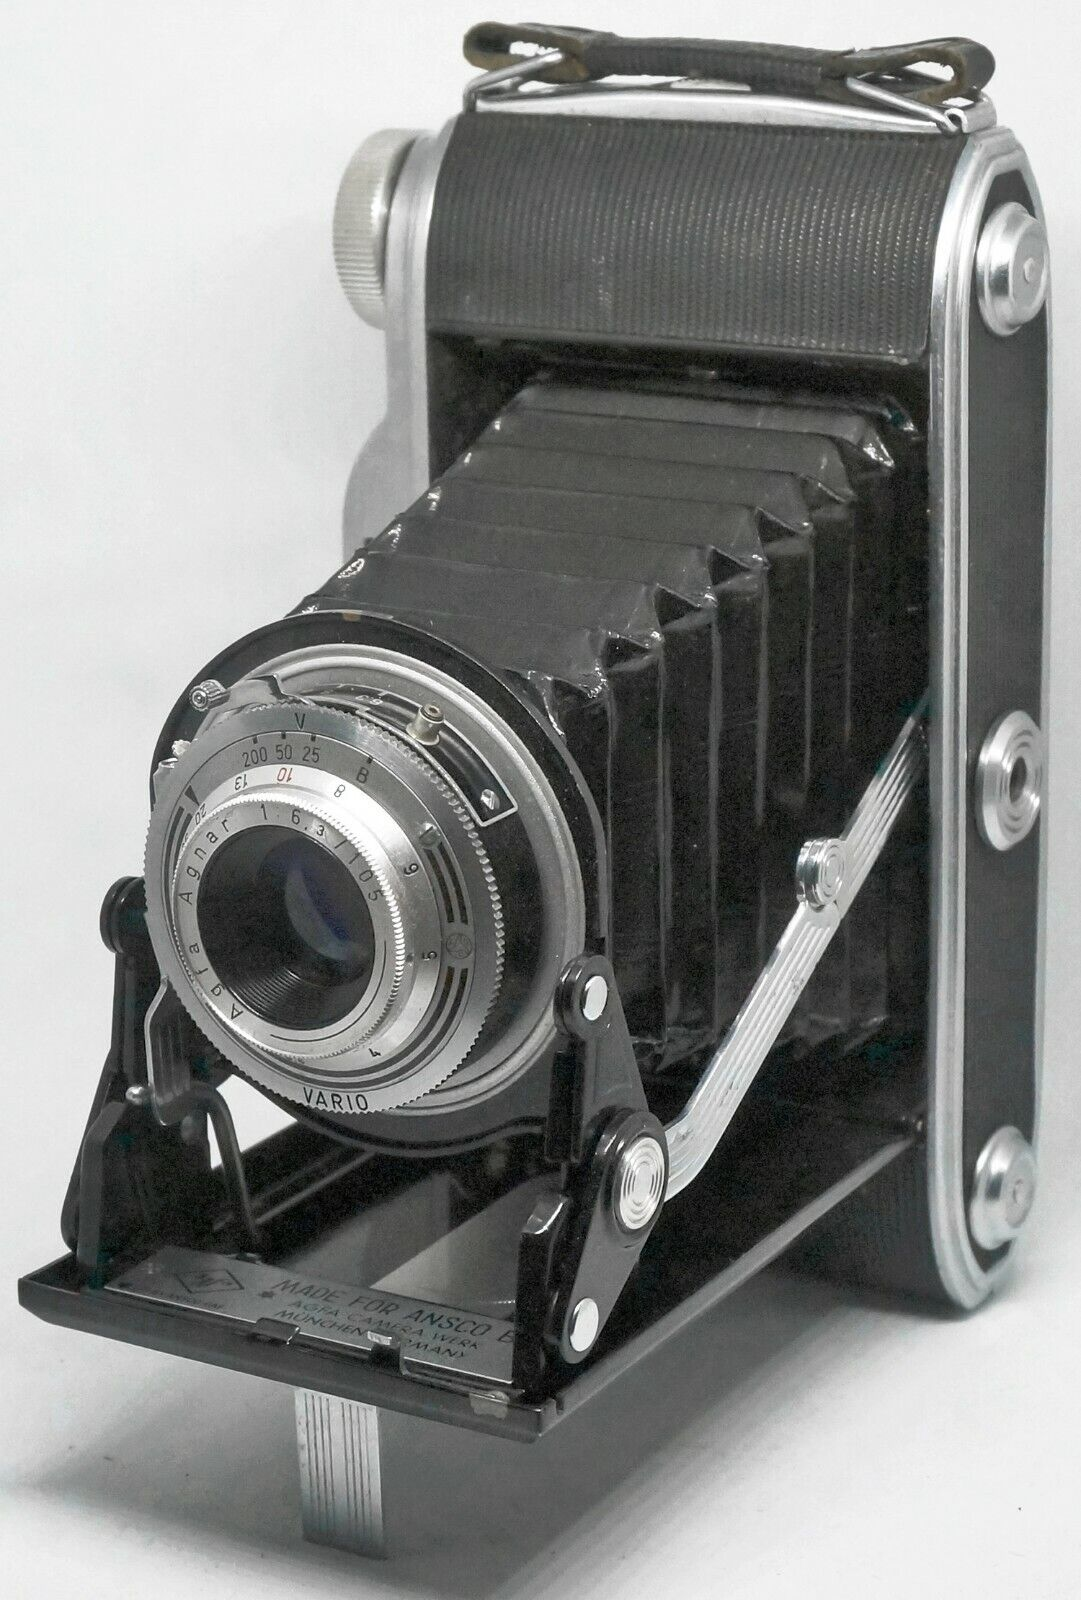 Ansco Viking 6.3 Agfa Manufacture Type 120 Wide Format VG Works Well - $65.00